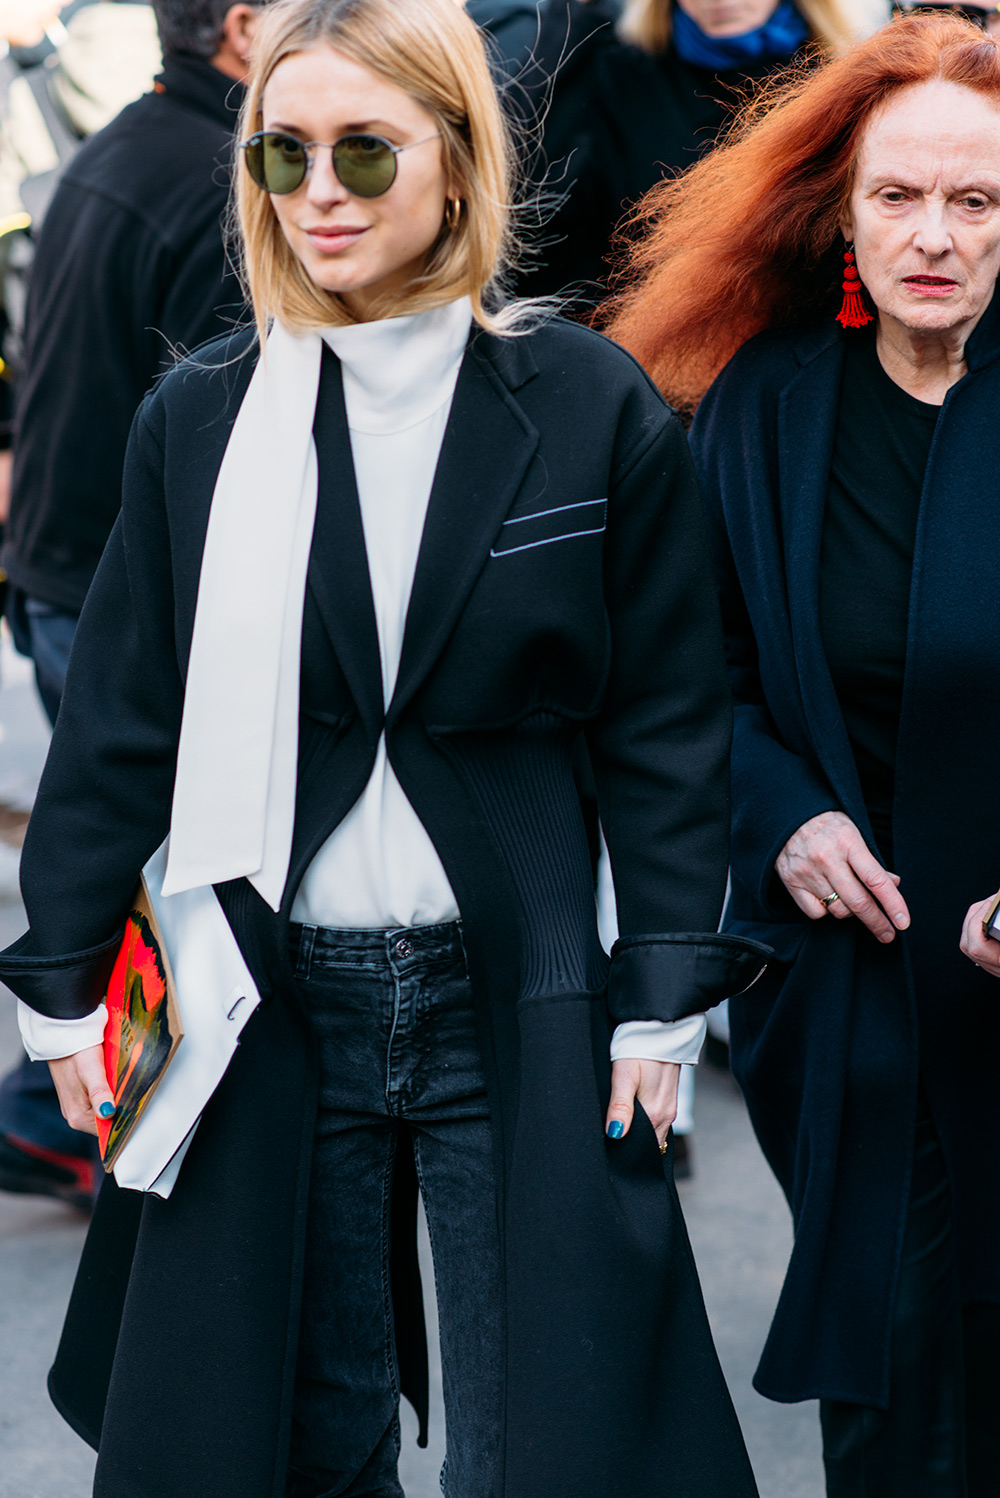 Paris Fashion Week Streetstyle by The Petticoat -Pernille Teisbaek and Grace Coddington after Celine Show Paris PFW